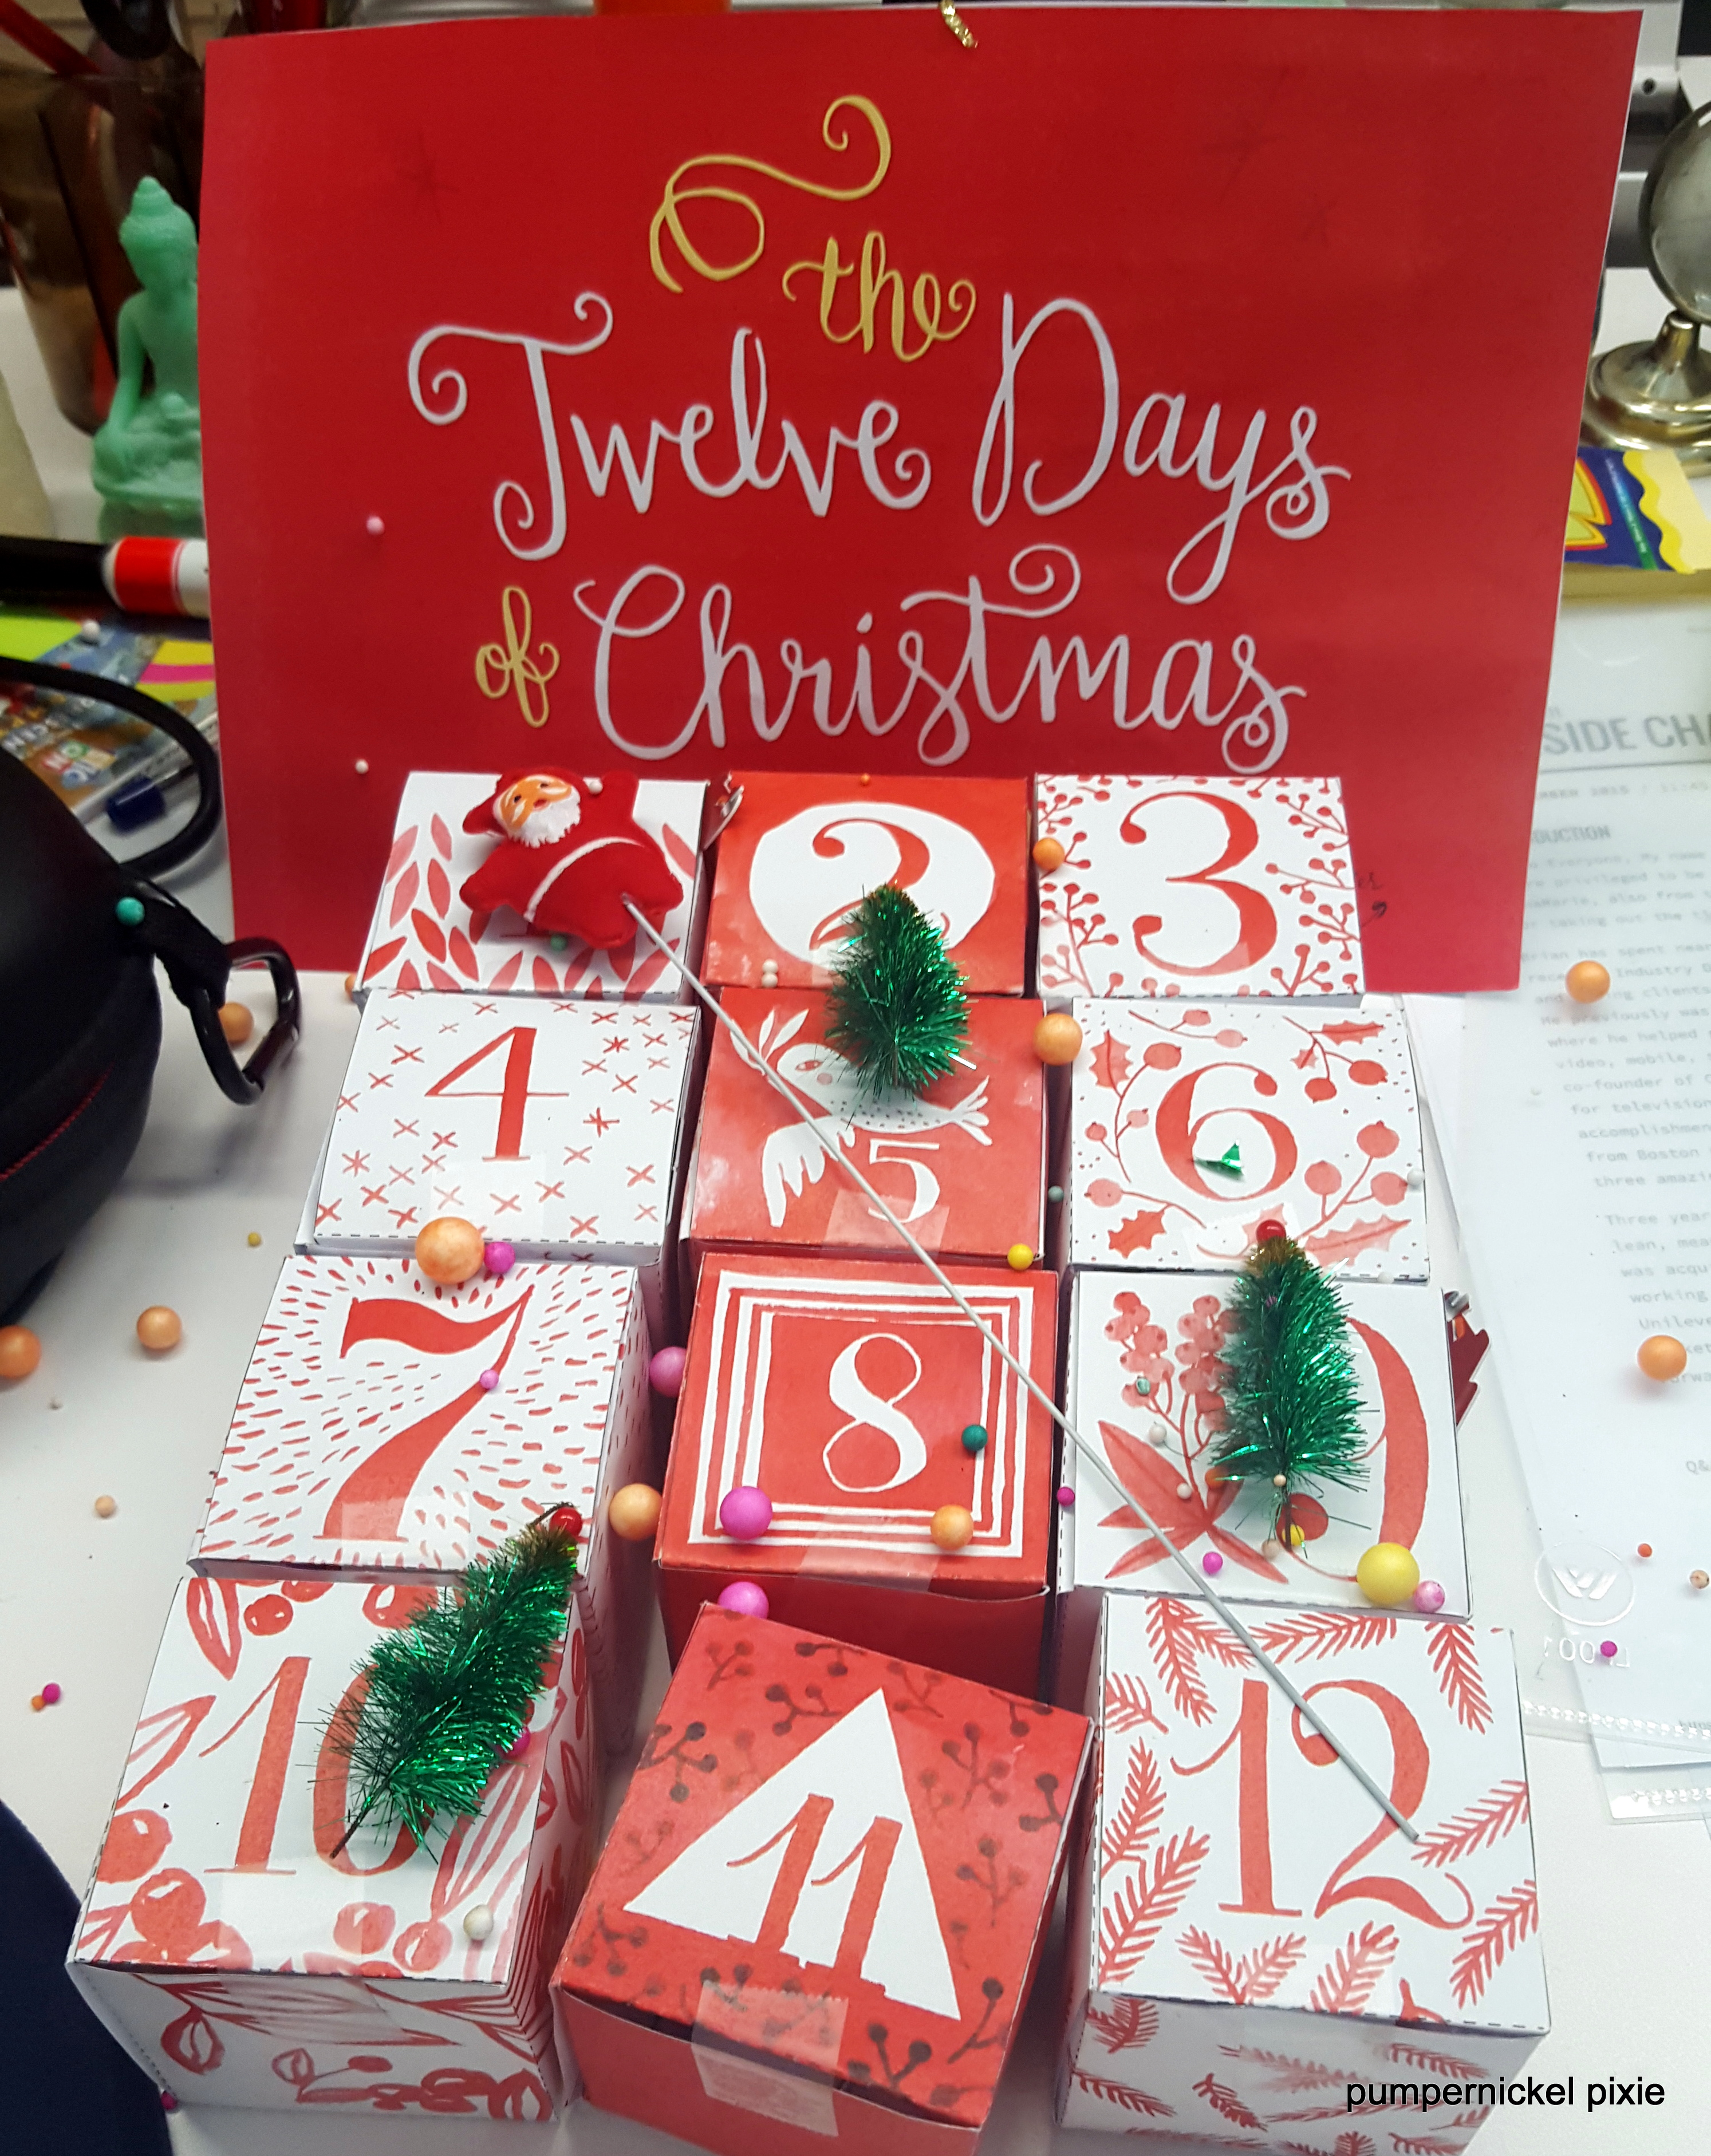 christmas, christmas 2015, #christmas, #christmas 2015, secret santa, secret santa office, secret santa gift, secret santa diy, secret santa fun, 3d car puzzle, frank sinatra vinyl, advent calendar diy, watercolor advent calendar, secret santa for colleagues, secret santa christmas, creative diy, fun diy, christmas diy, puzzle diy, secret santa puzzle, pumpernickel pixie